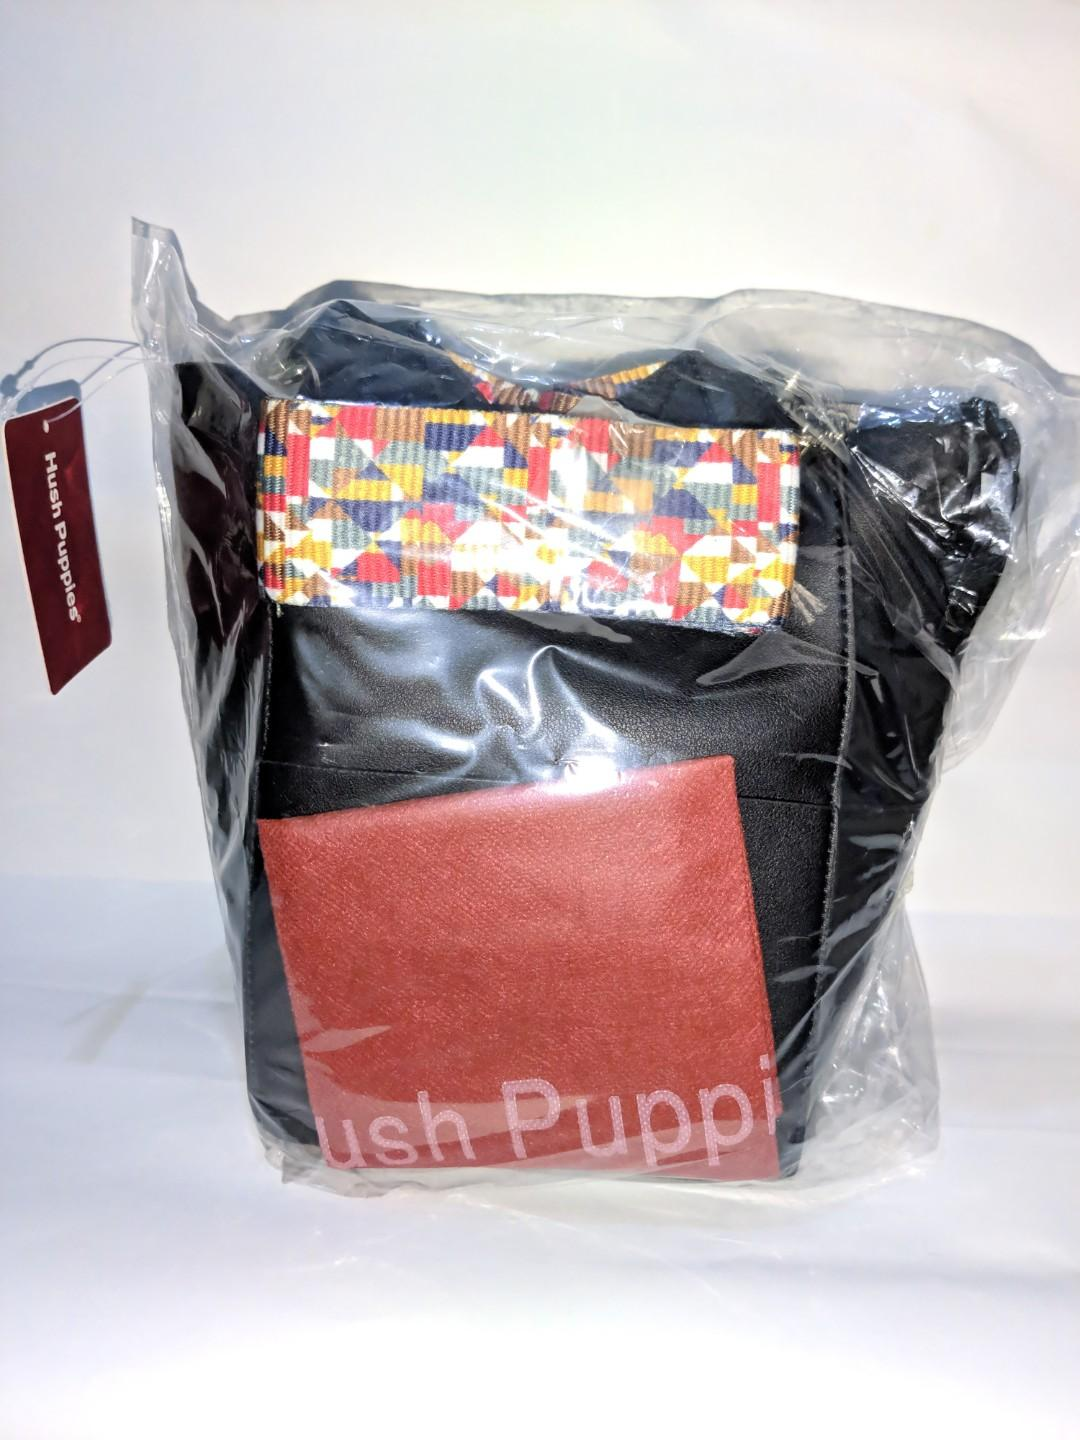 TAS HUSH PUPPIES ORIGINAL SASA SLING BAG HITAM